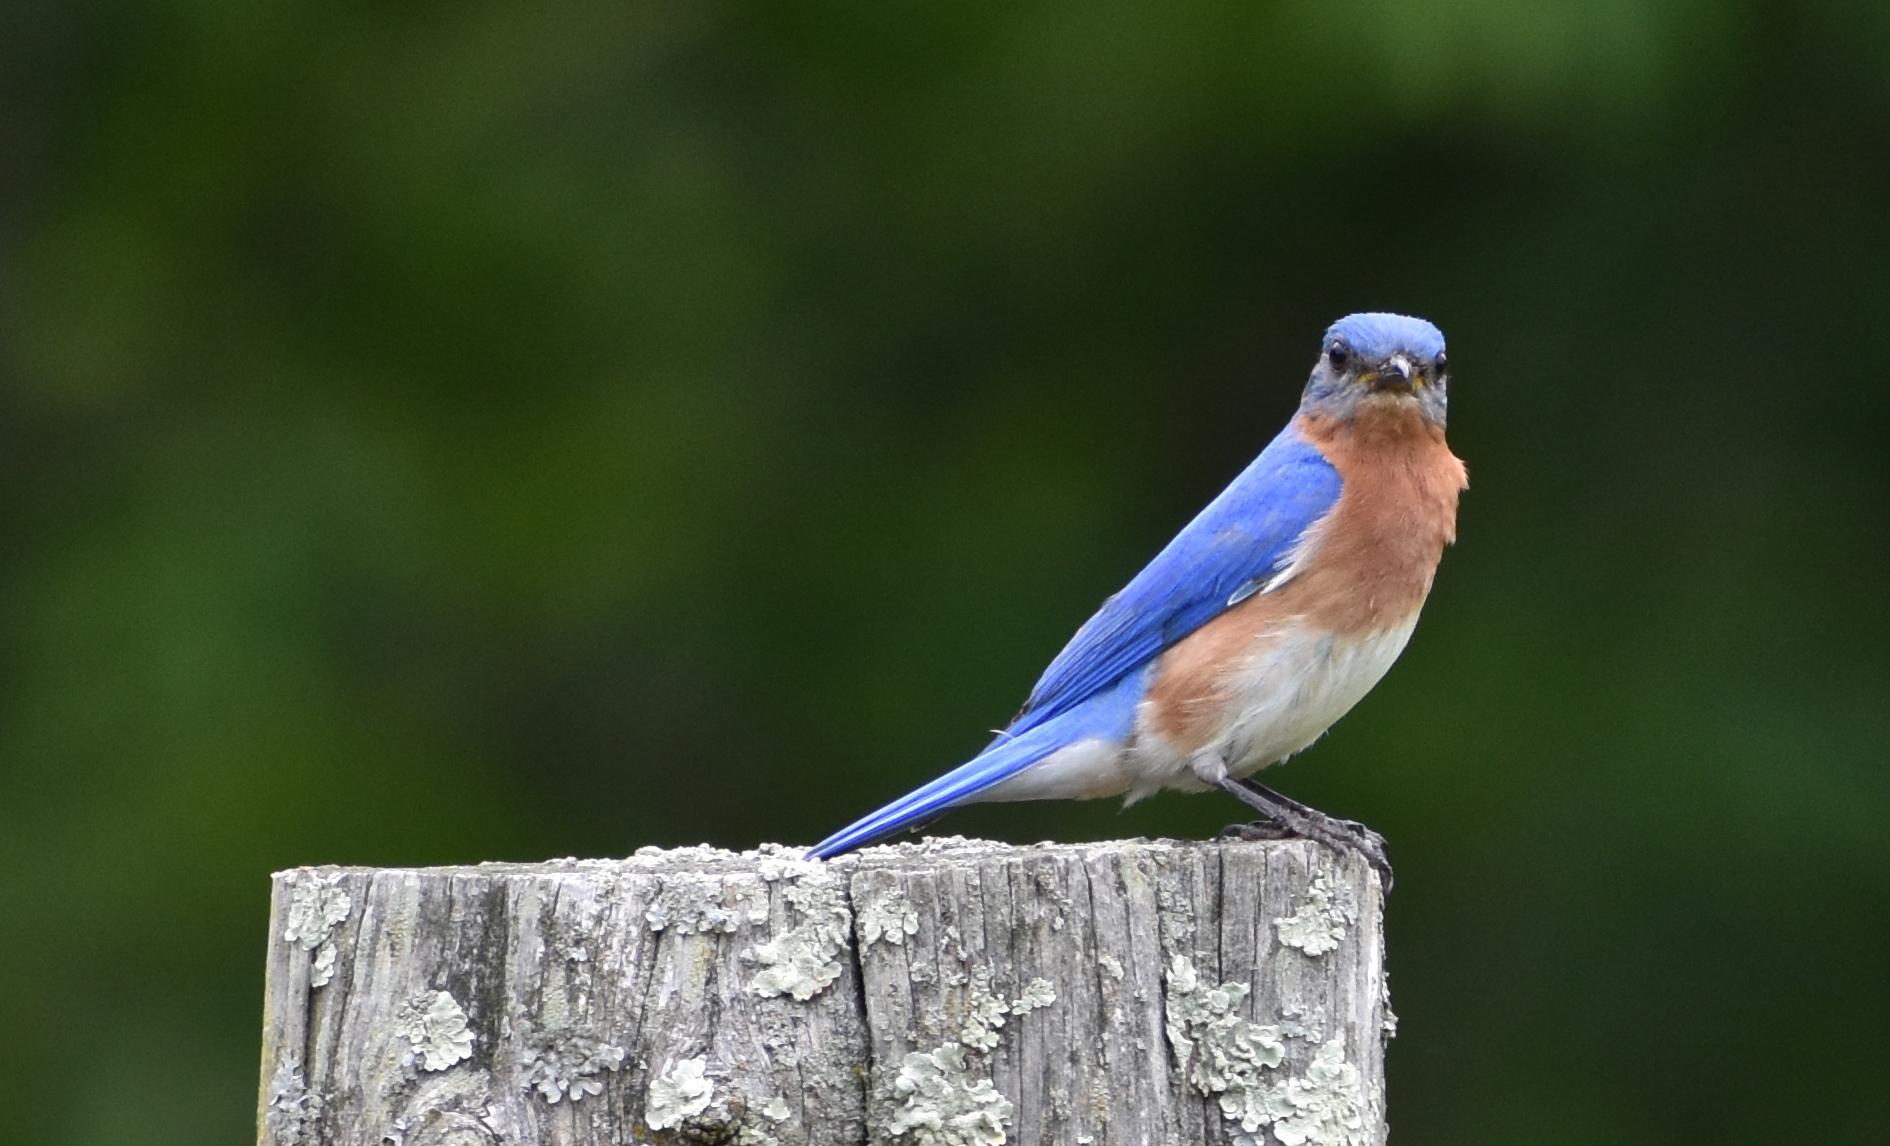 Eastern Bluebird perched on fence post